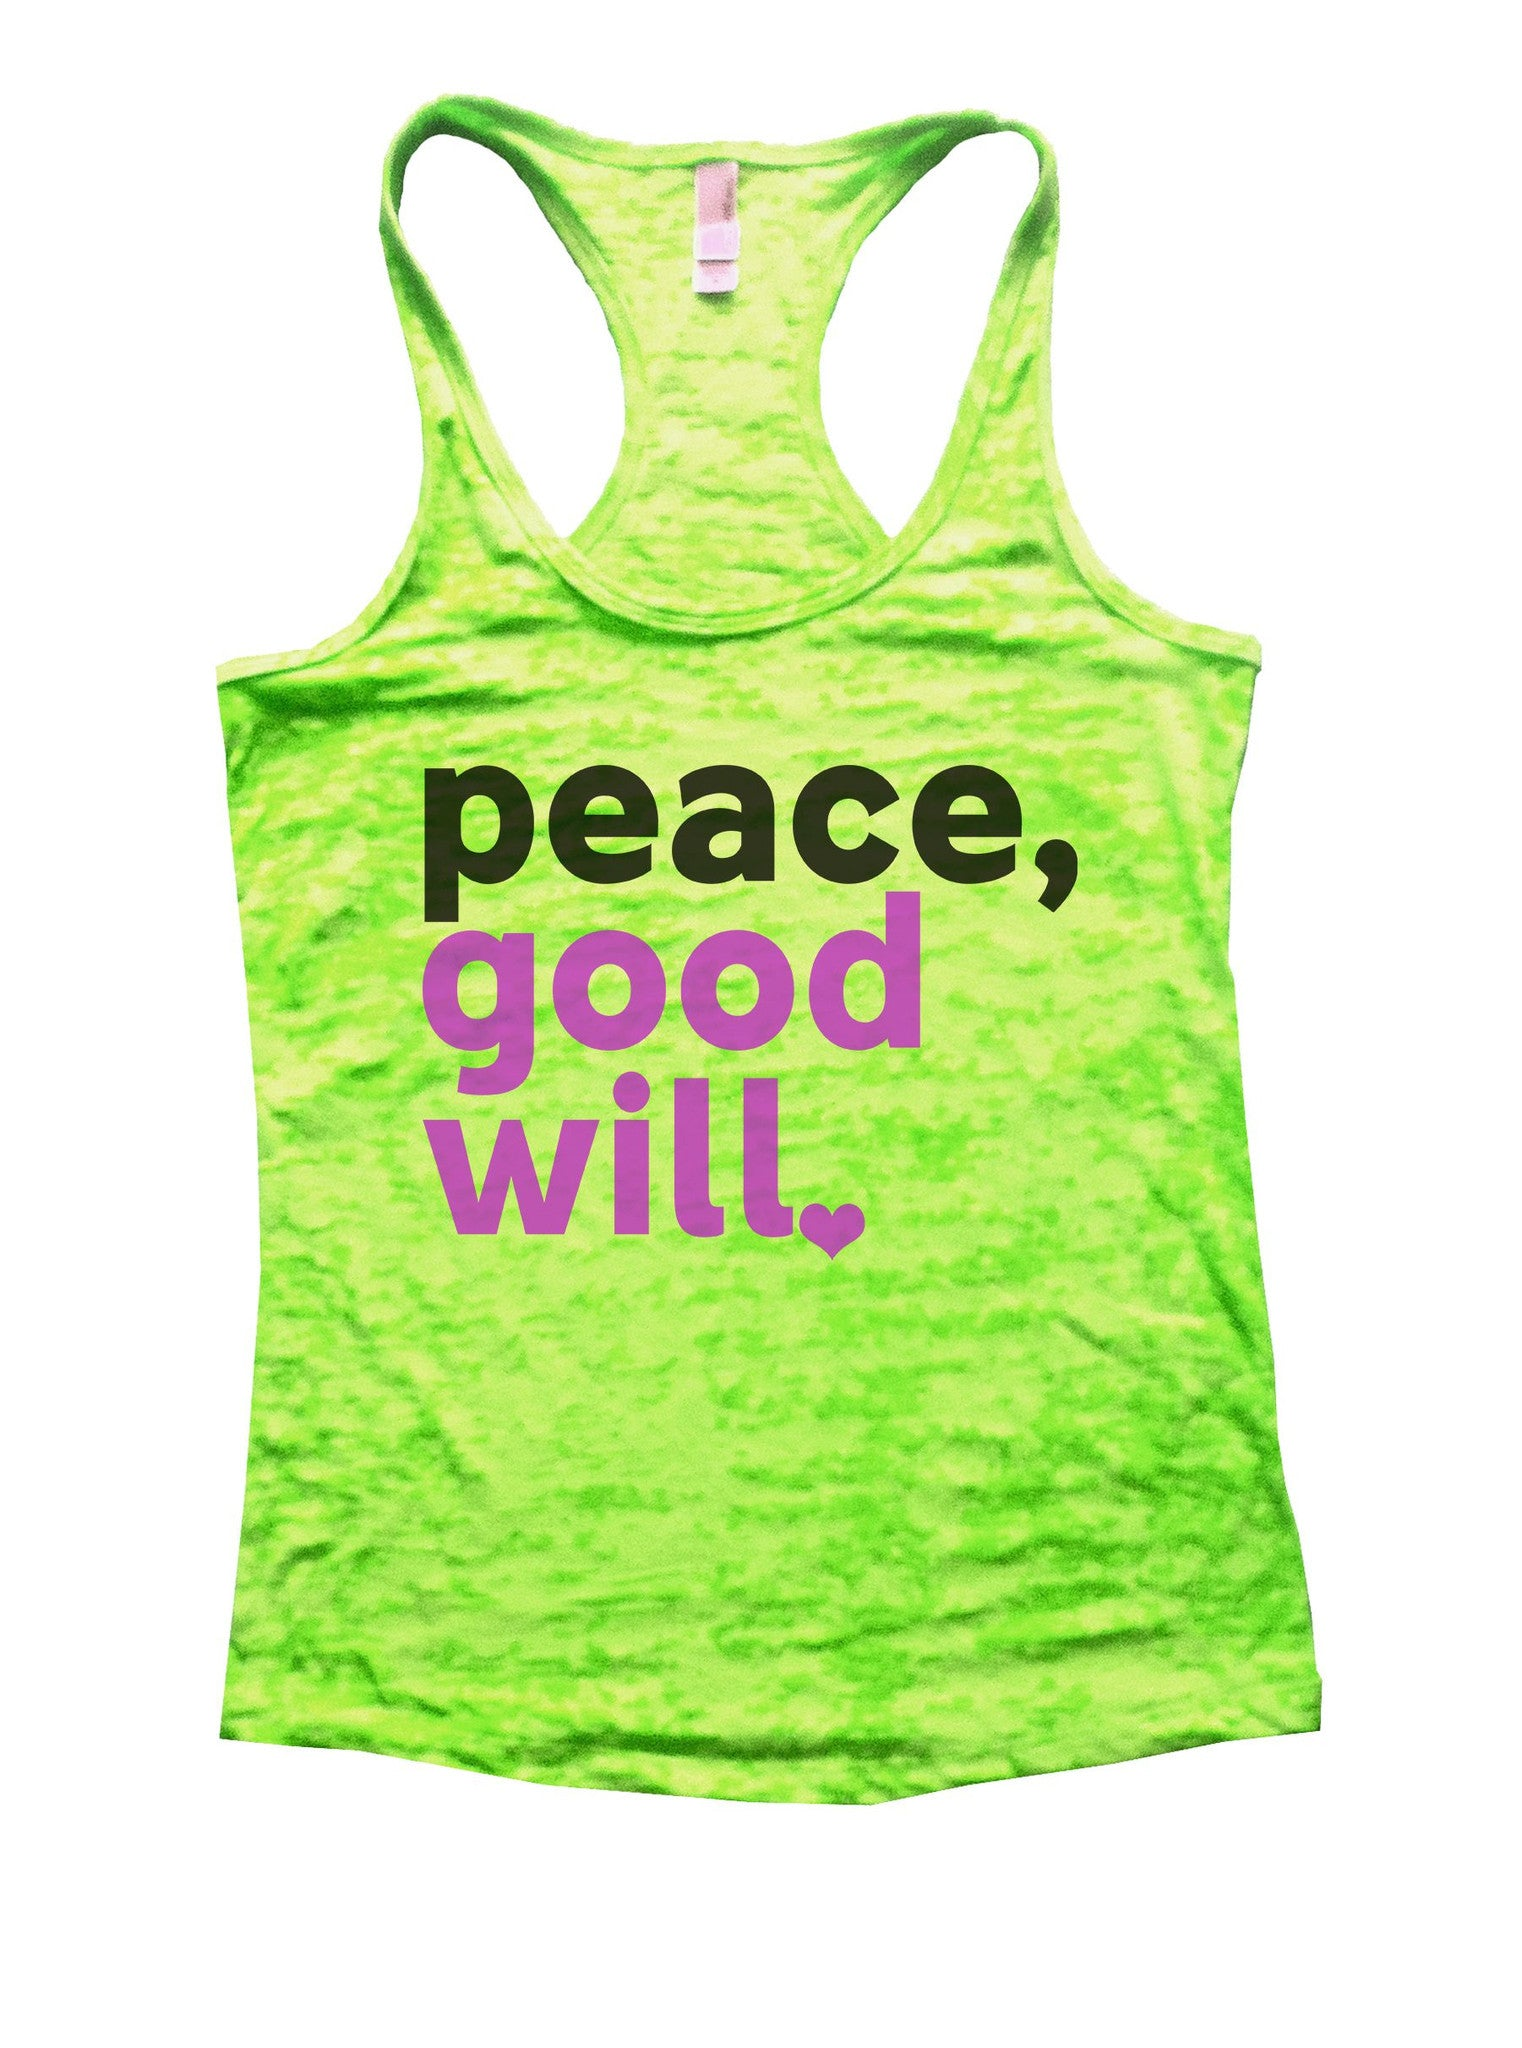 Peace, Good Will Burnout Tank Top By BurnoutTankTops.com - 1078 - Funny Shirts Tank Tops Burnouts and Triblends  - 1